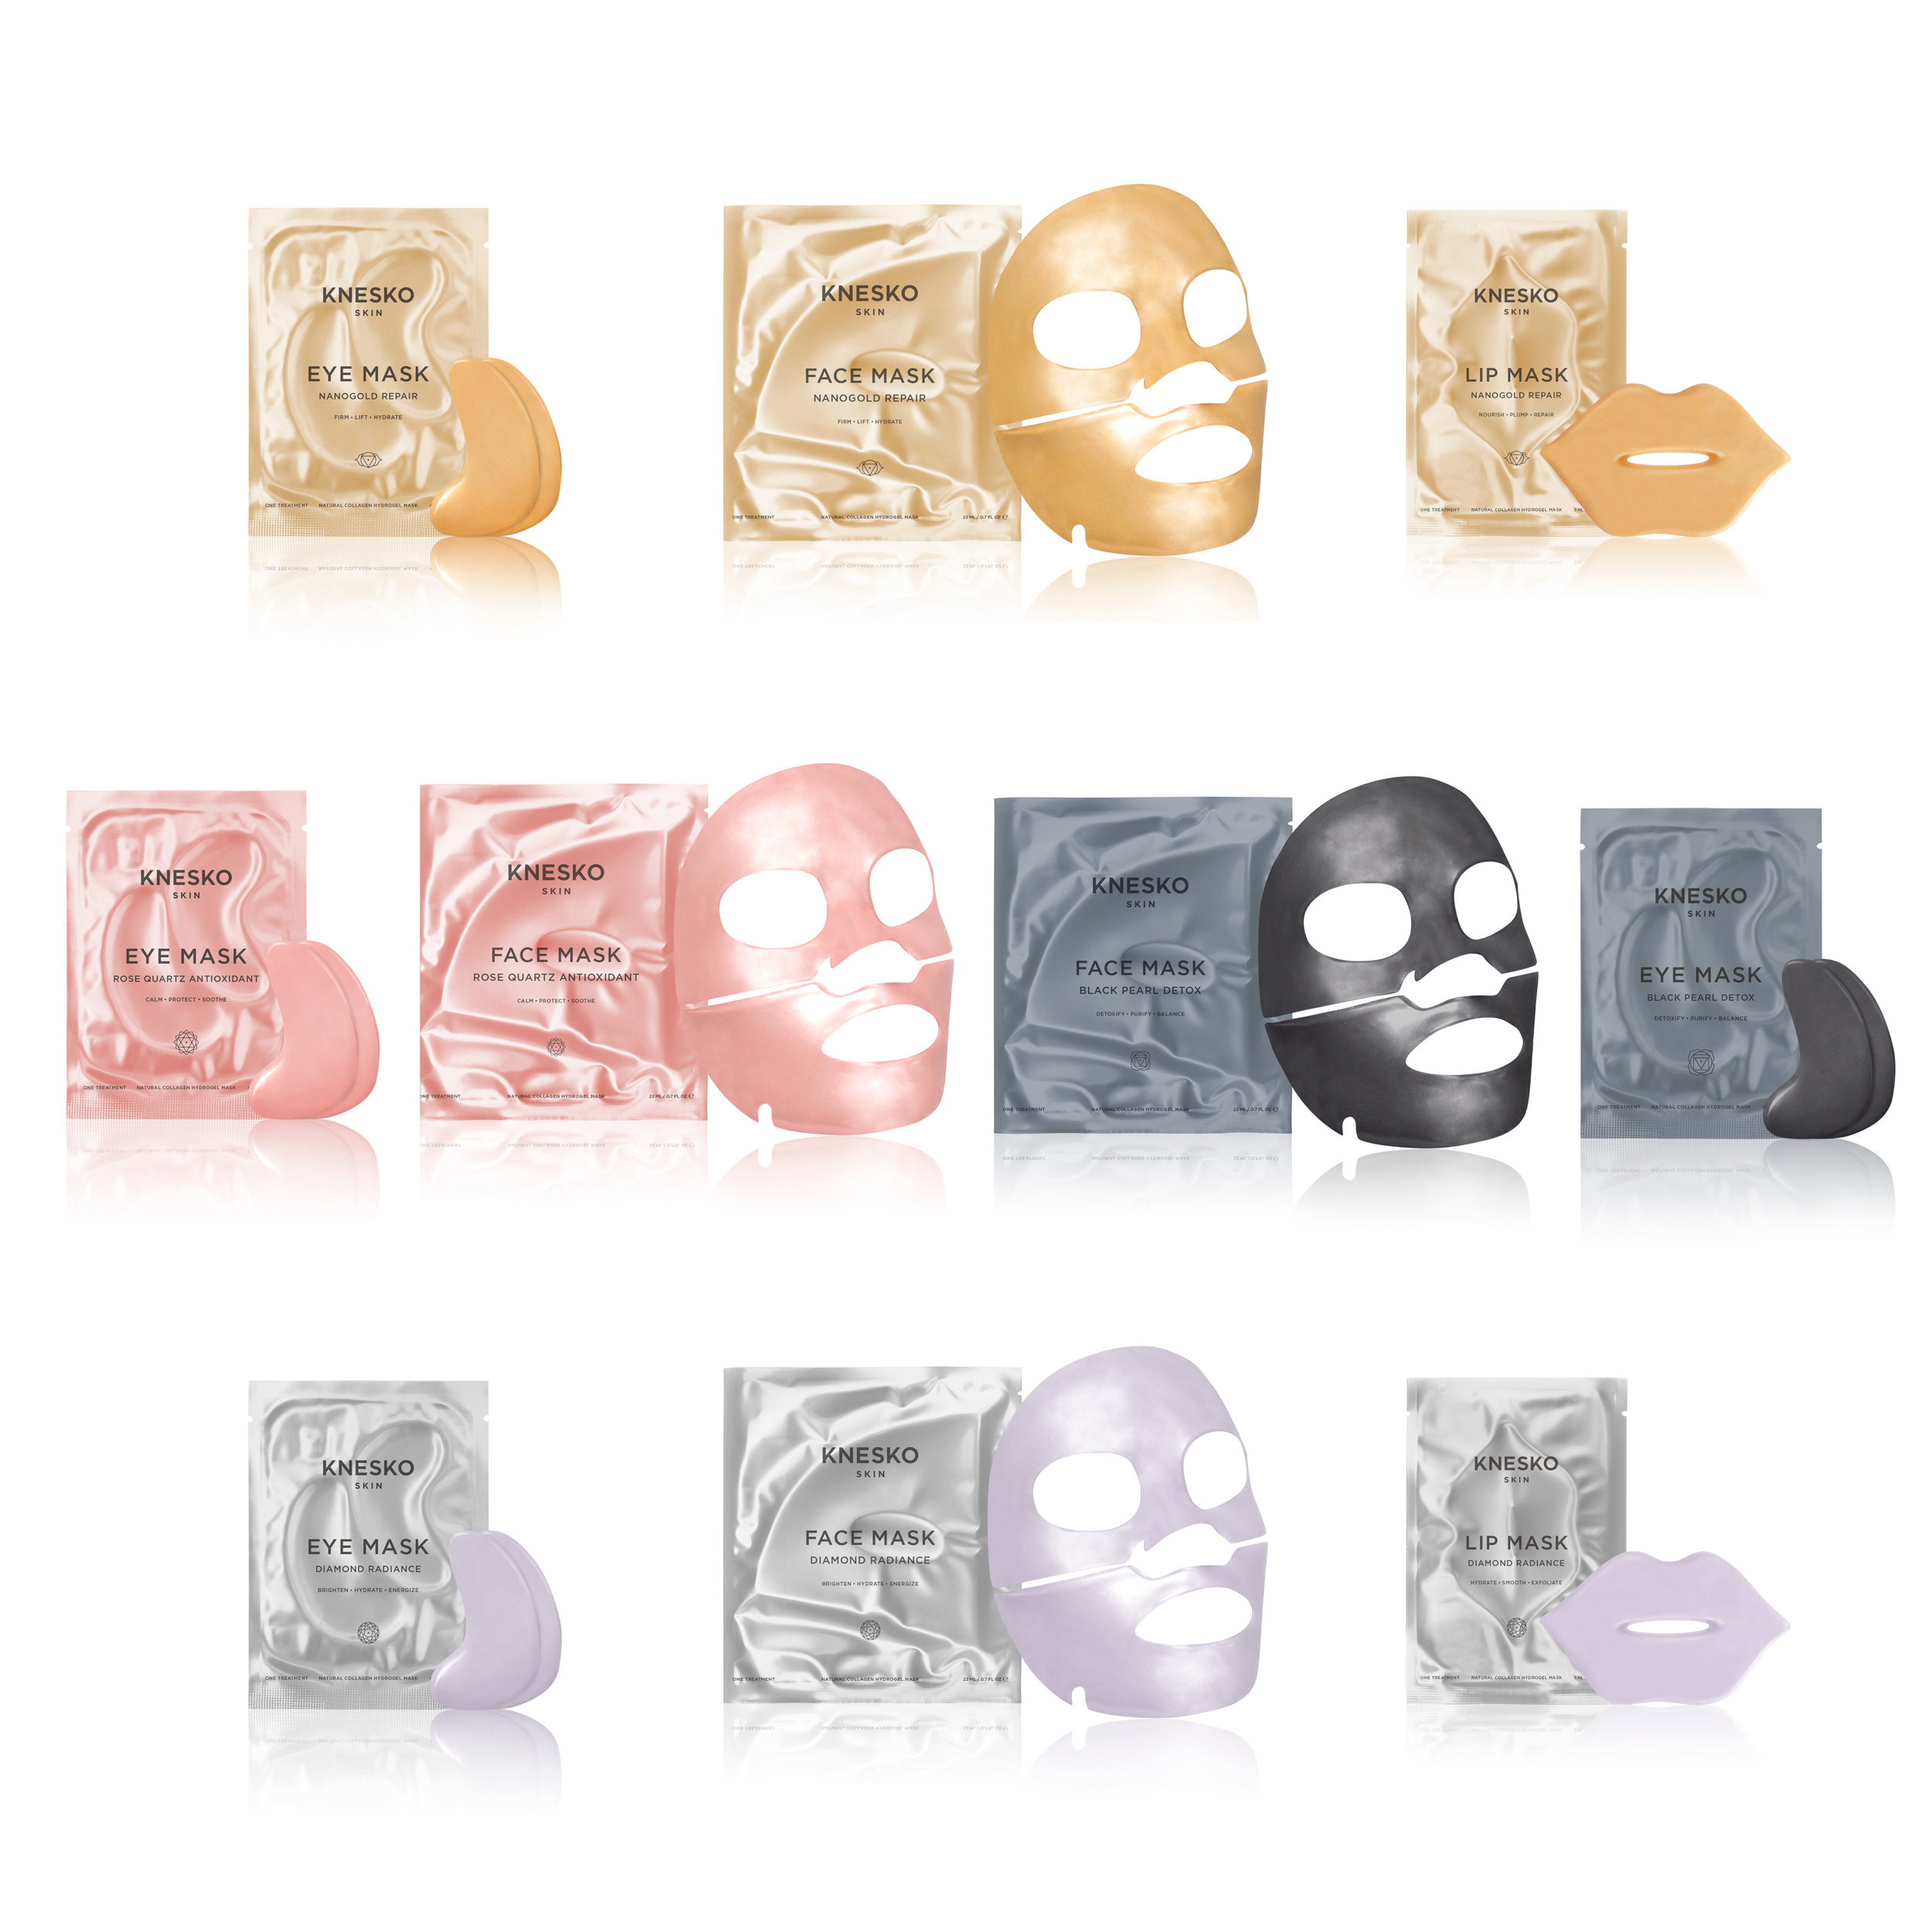 Knesko Luxe Kit Masks